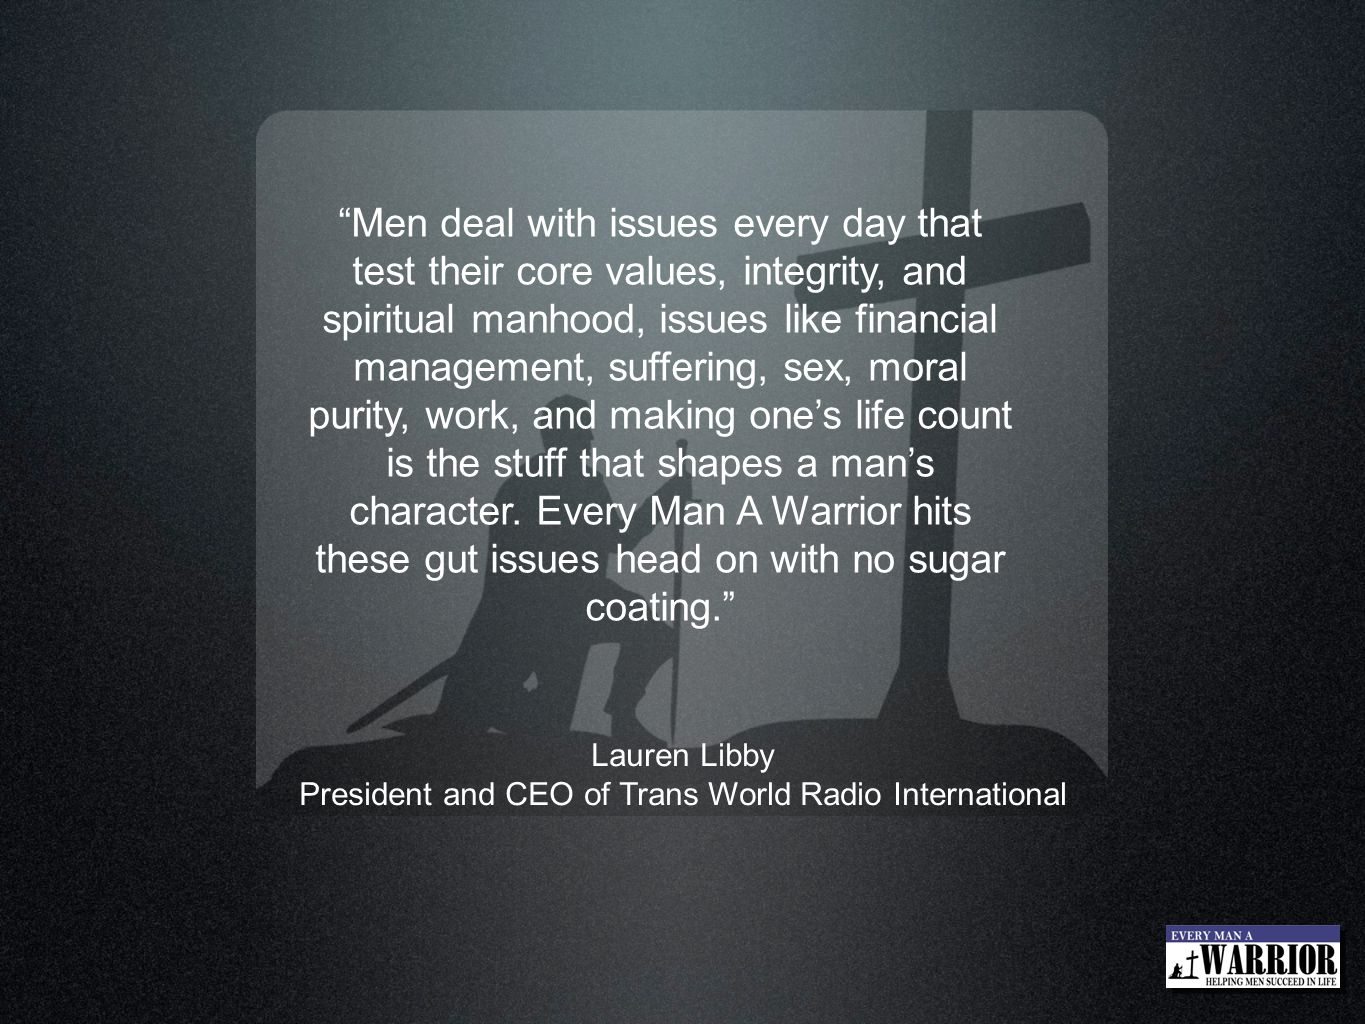 President and CEO of Trans World Radio International